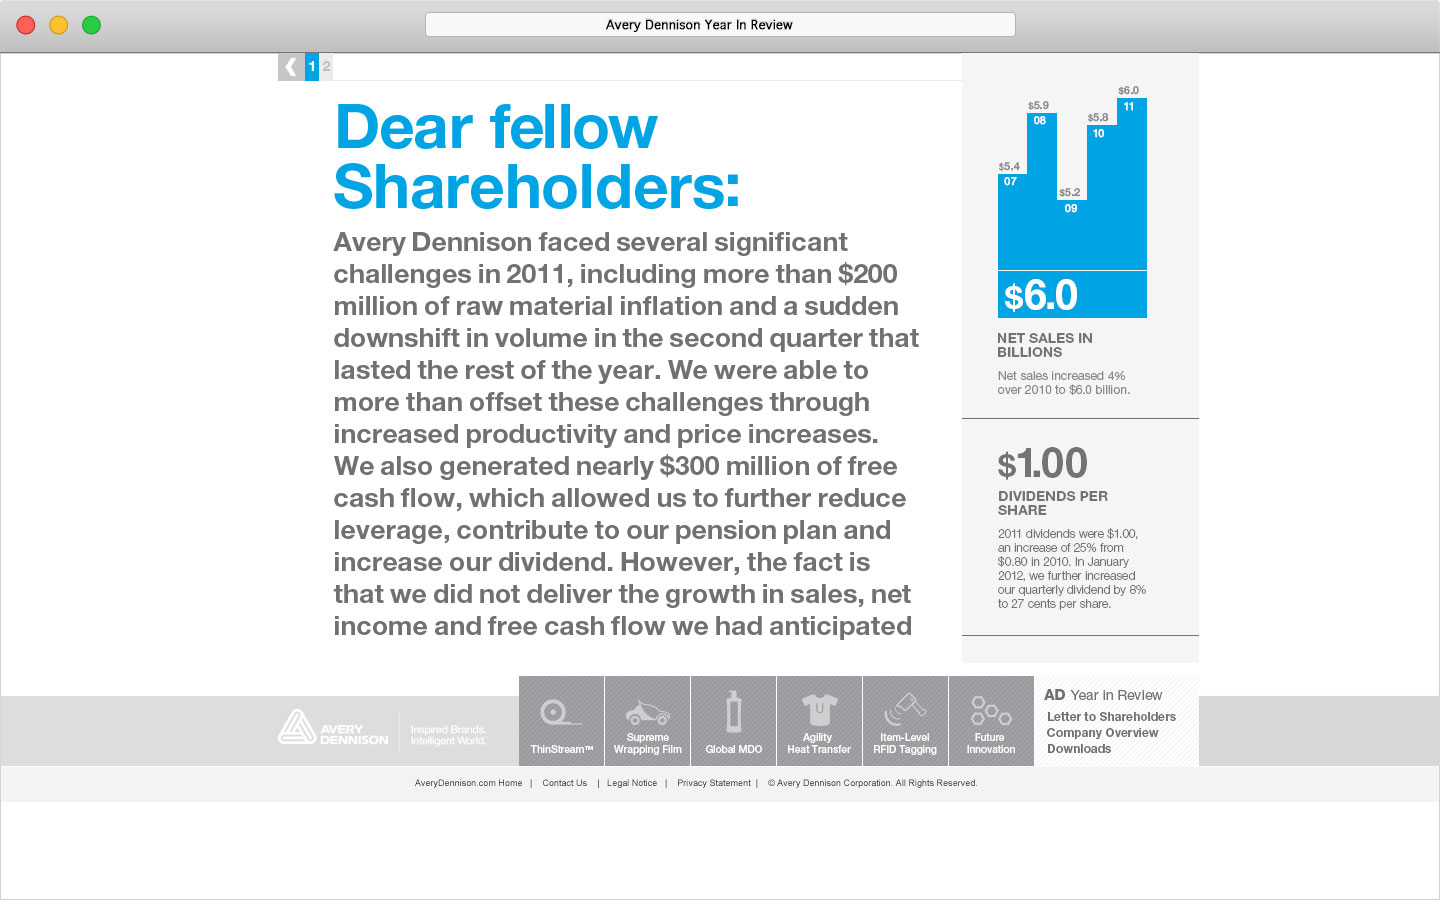 Avery Dennison 2011 Online Year In Review Letter to Shareholders